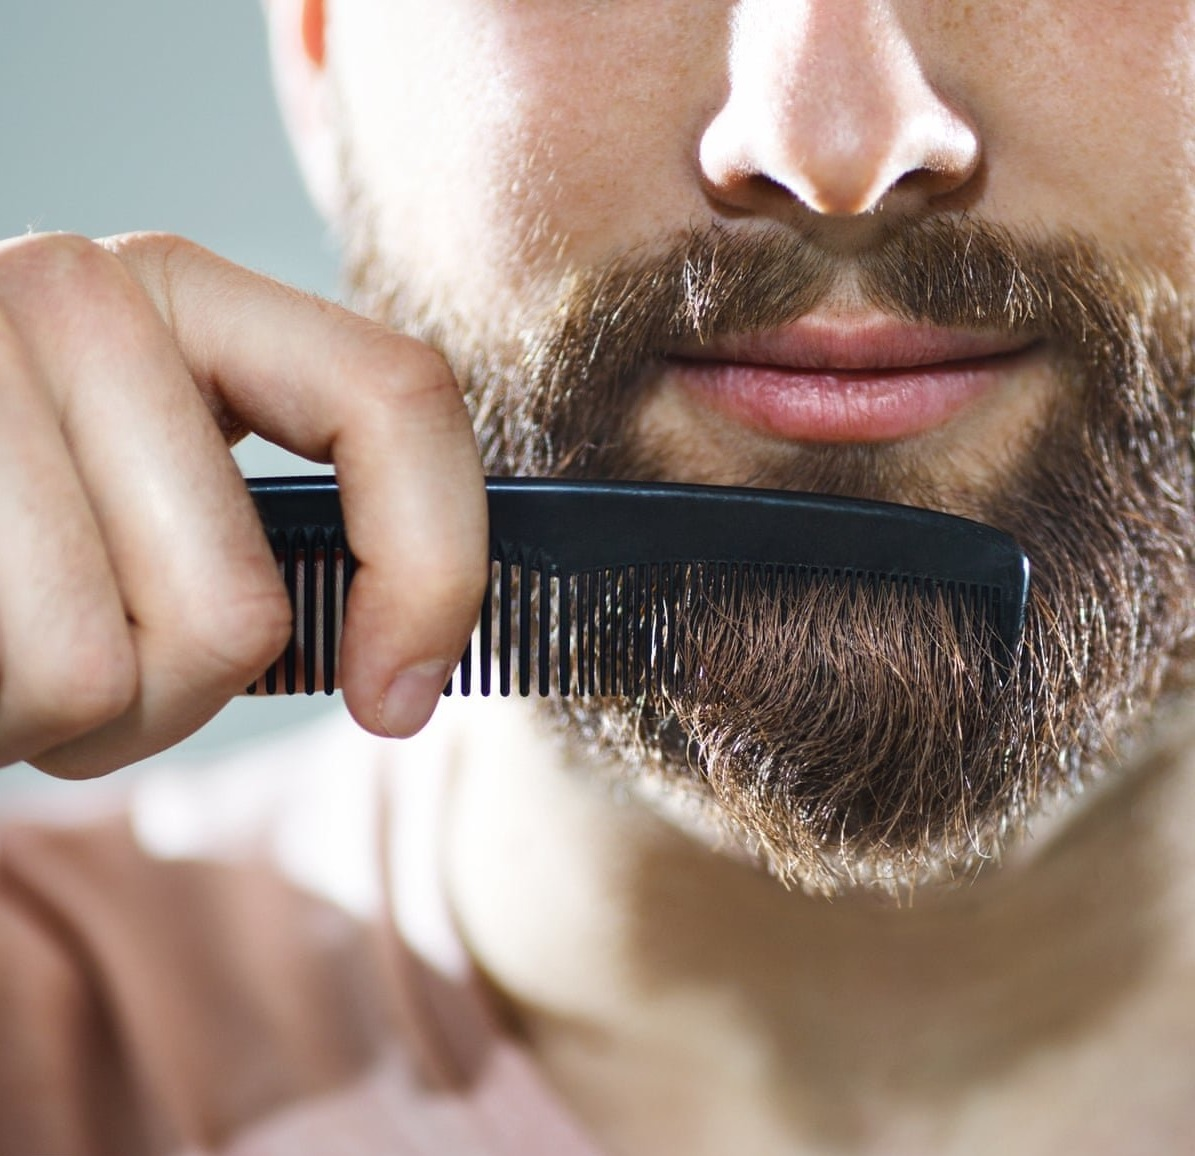 beard-cutting-1 25+ Best Brother Gift Ideas to Give on His Birthday 2020/2021